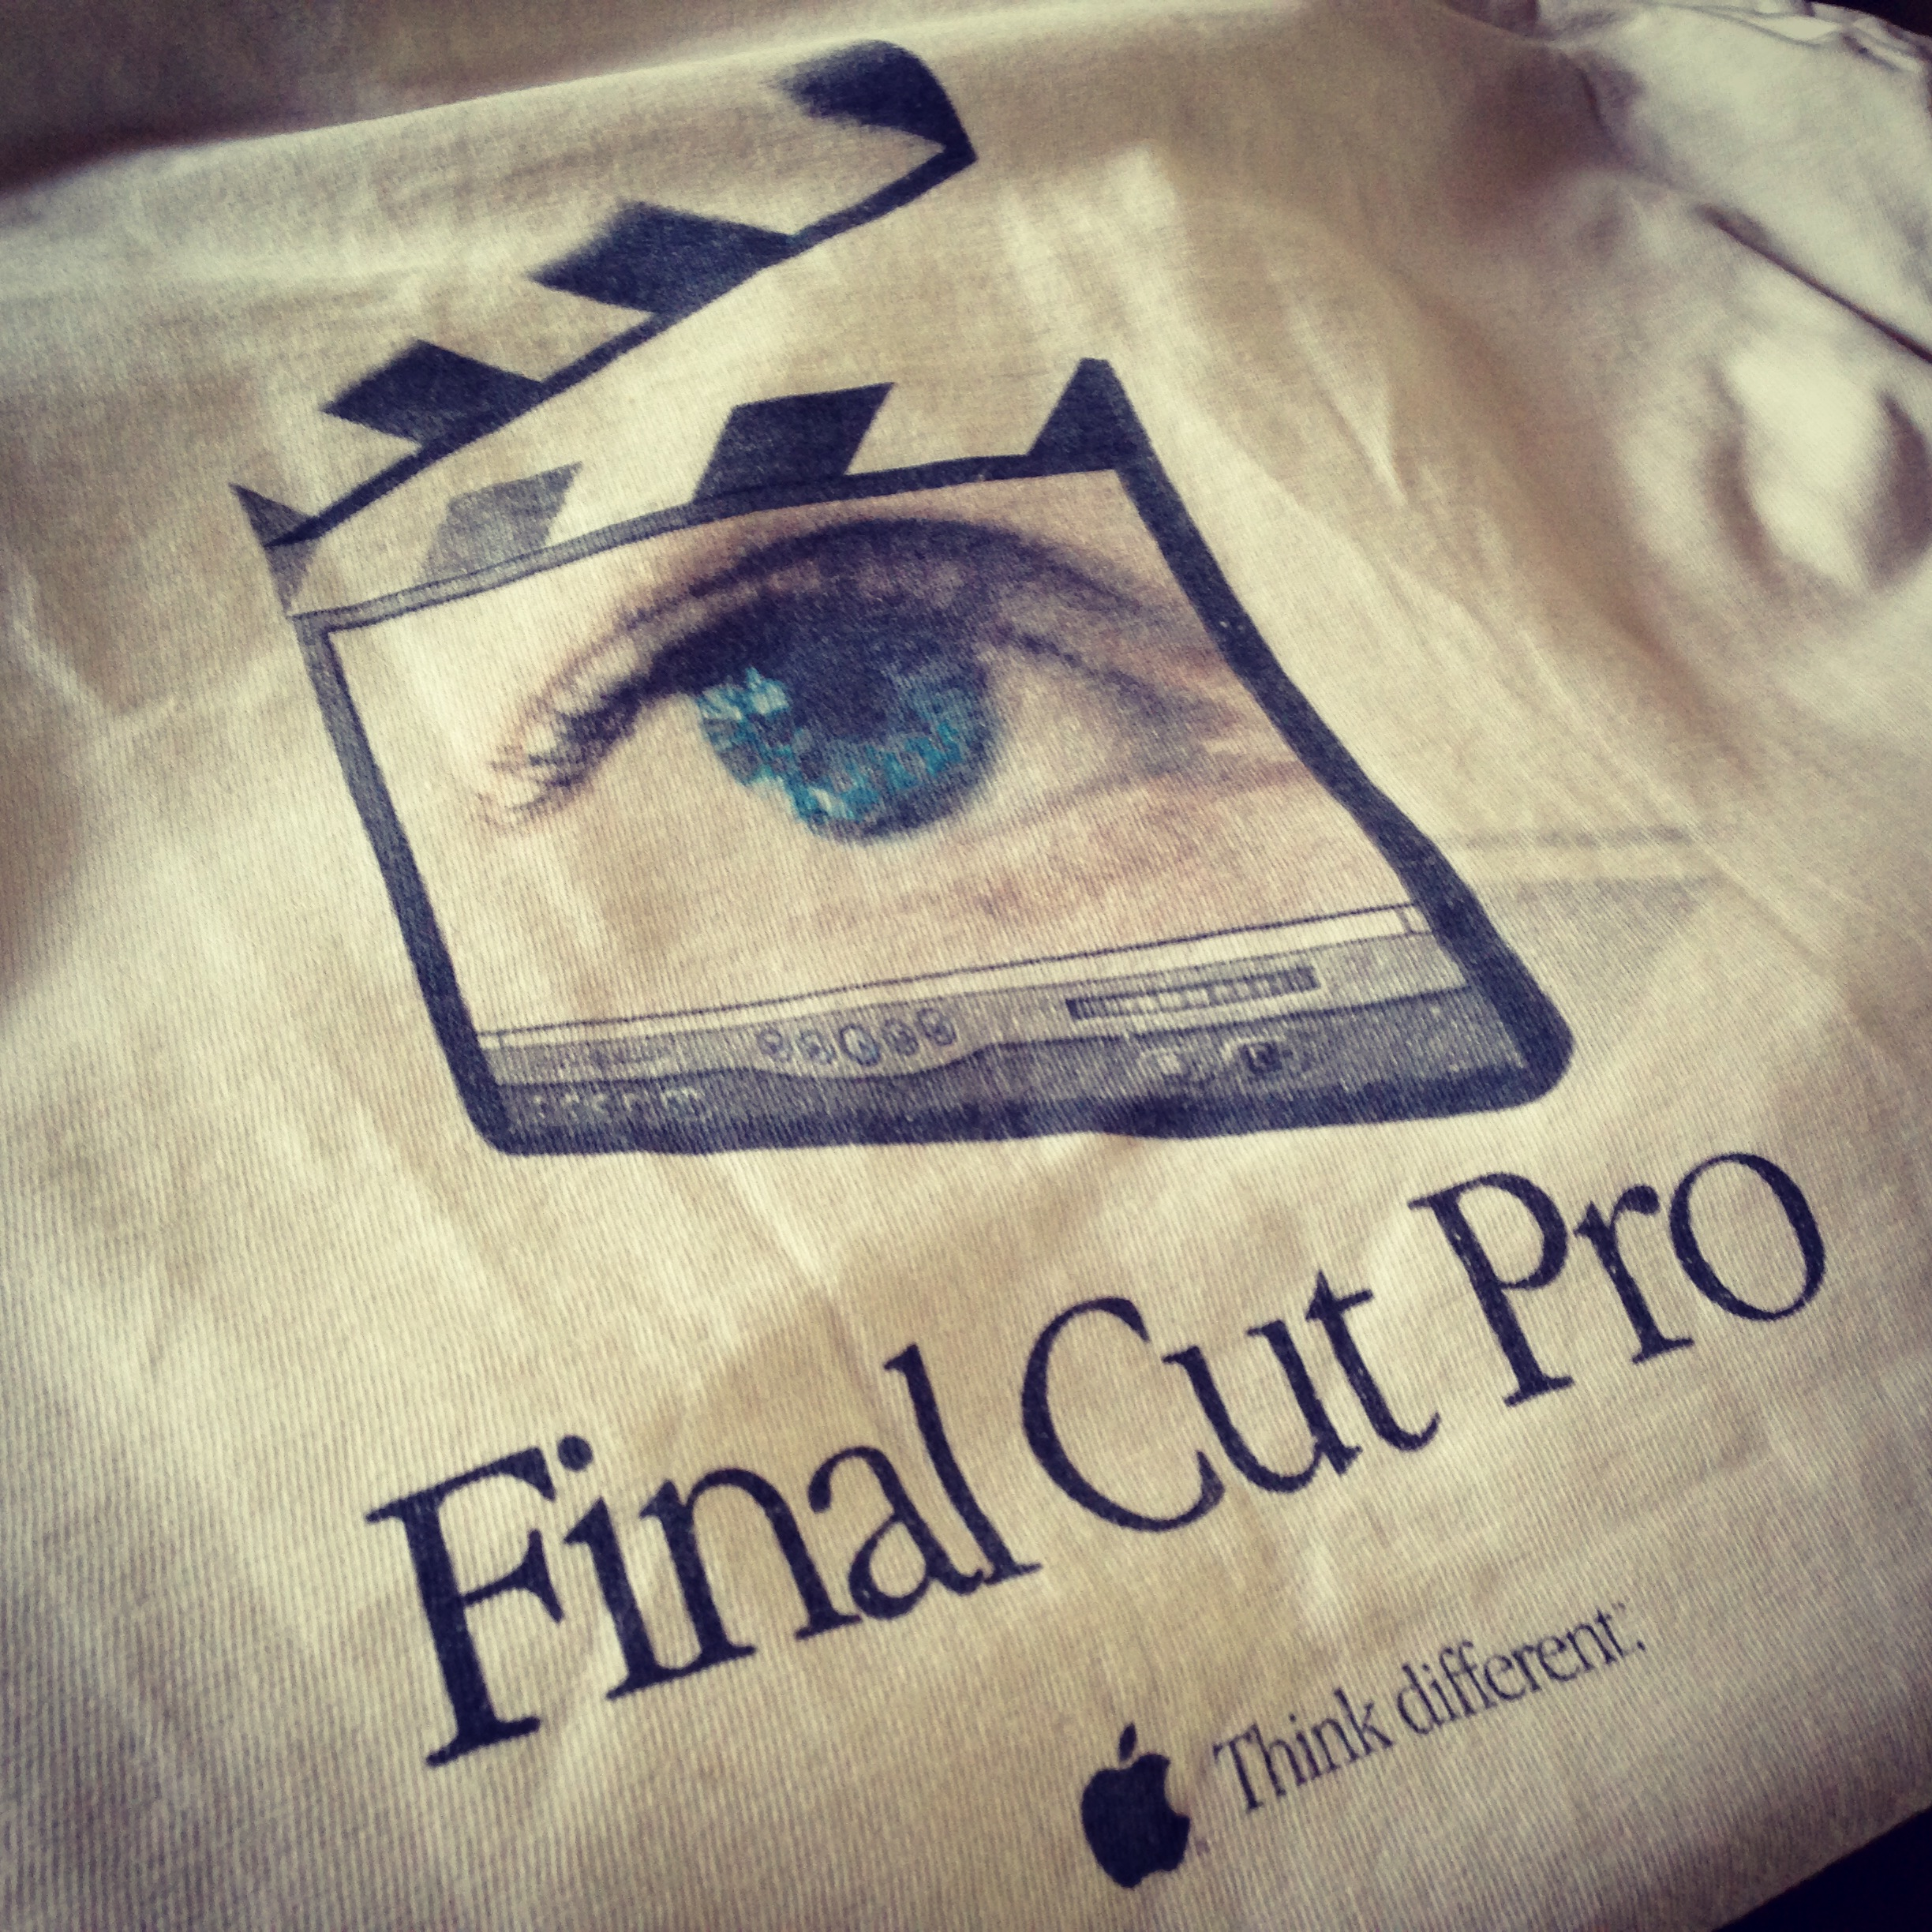 Final Cut Pro 1 Thank You survey T-shirt from Apple